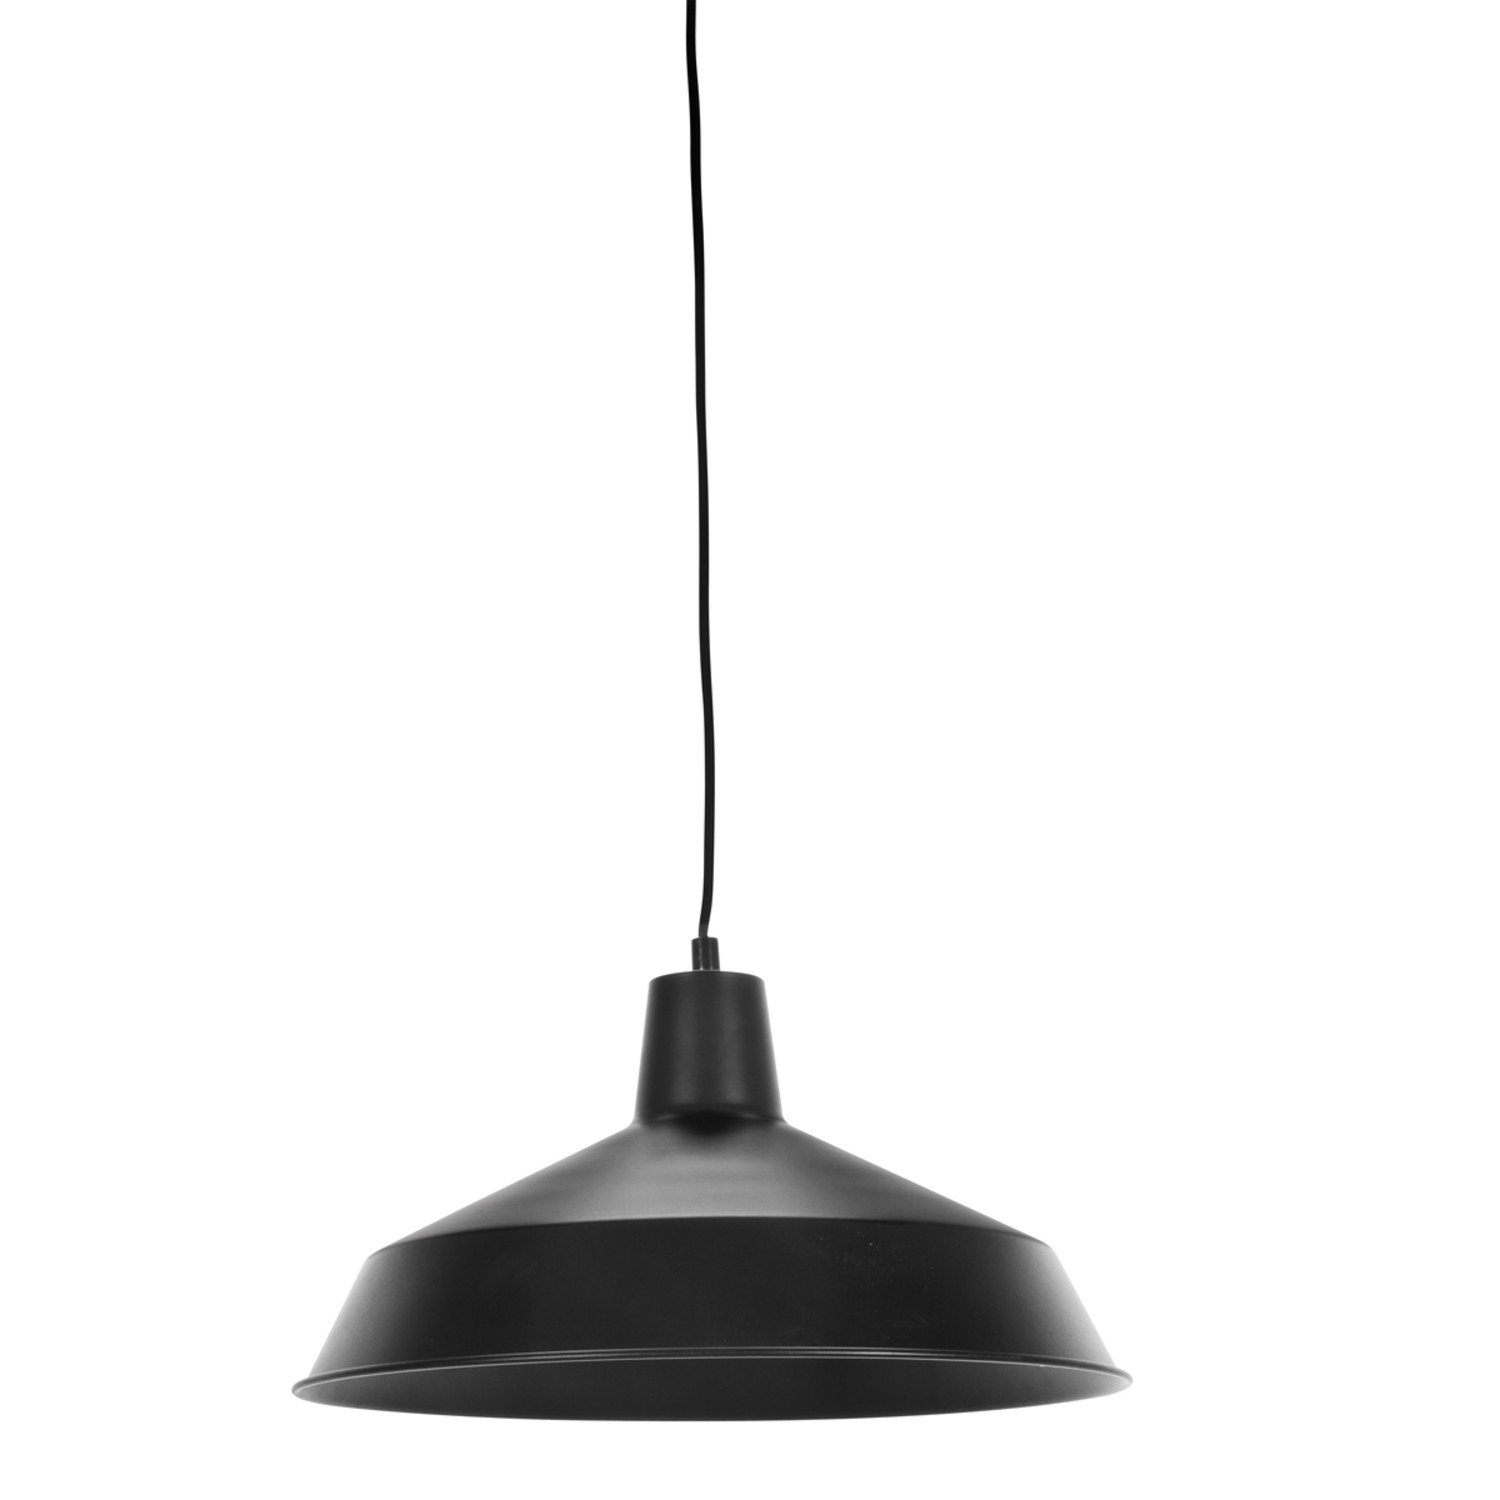 Globe Electric Barnyard 1-Light 16'' Industrial Warehouse Plug-in Pendant, Black 15' Cord, Matte Black Finish, in-Line On/Off Switch, 65151